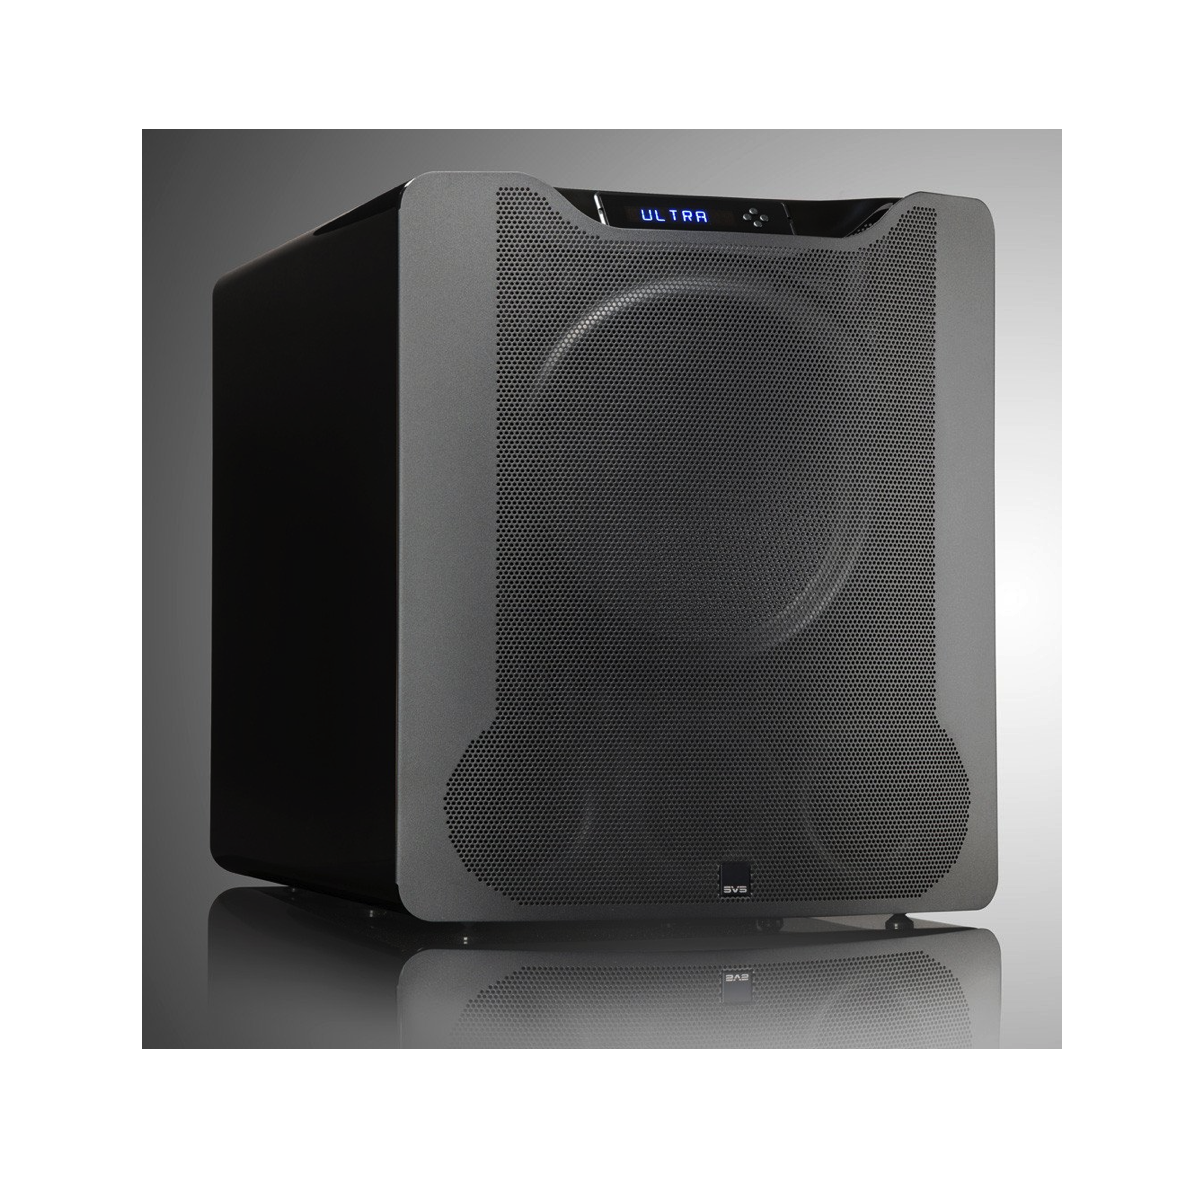 SVS Sound PB-16 Ultra - Subwoofer (Piano Gloss Black) - AVStore.in